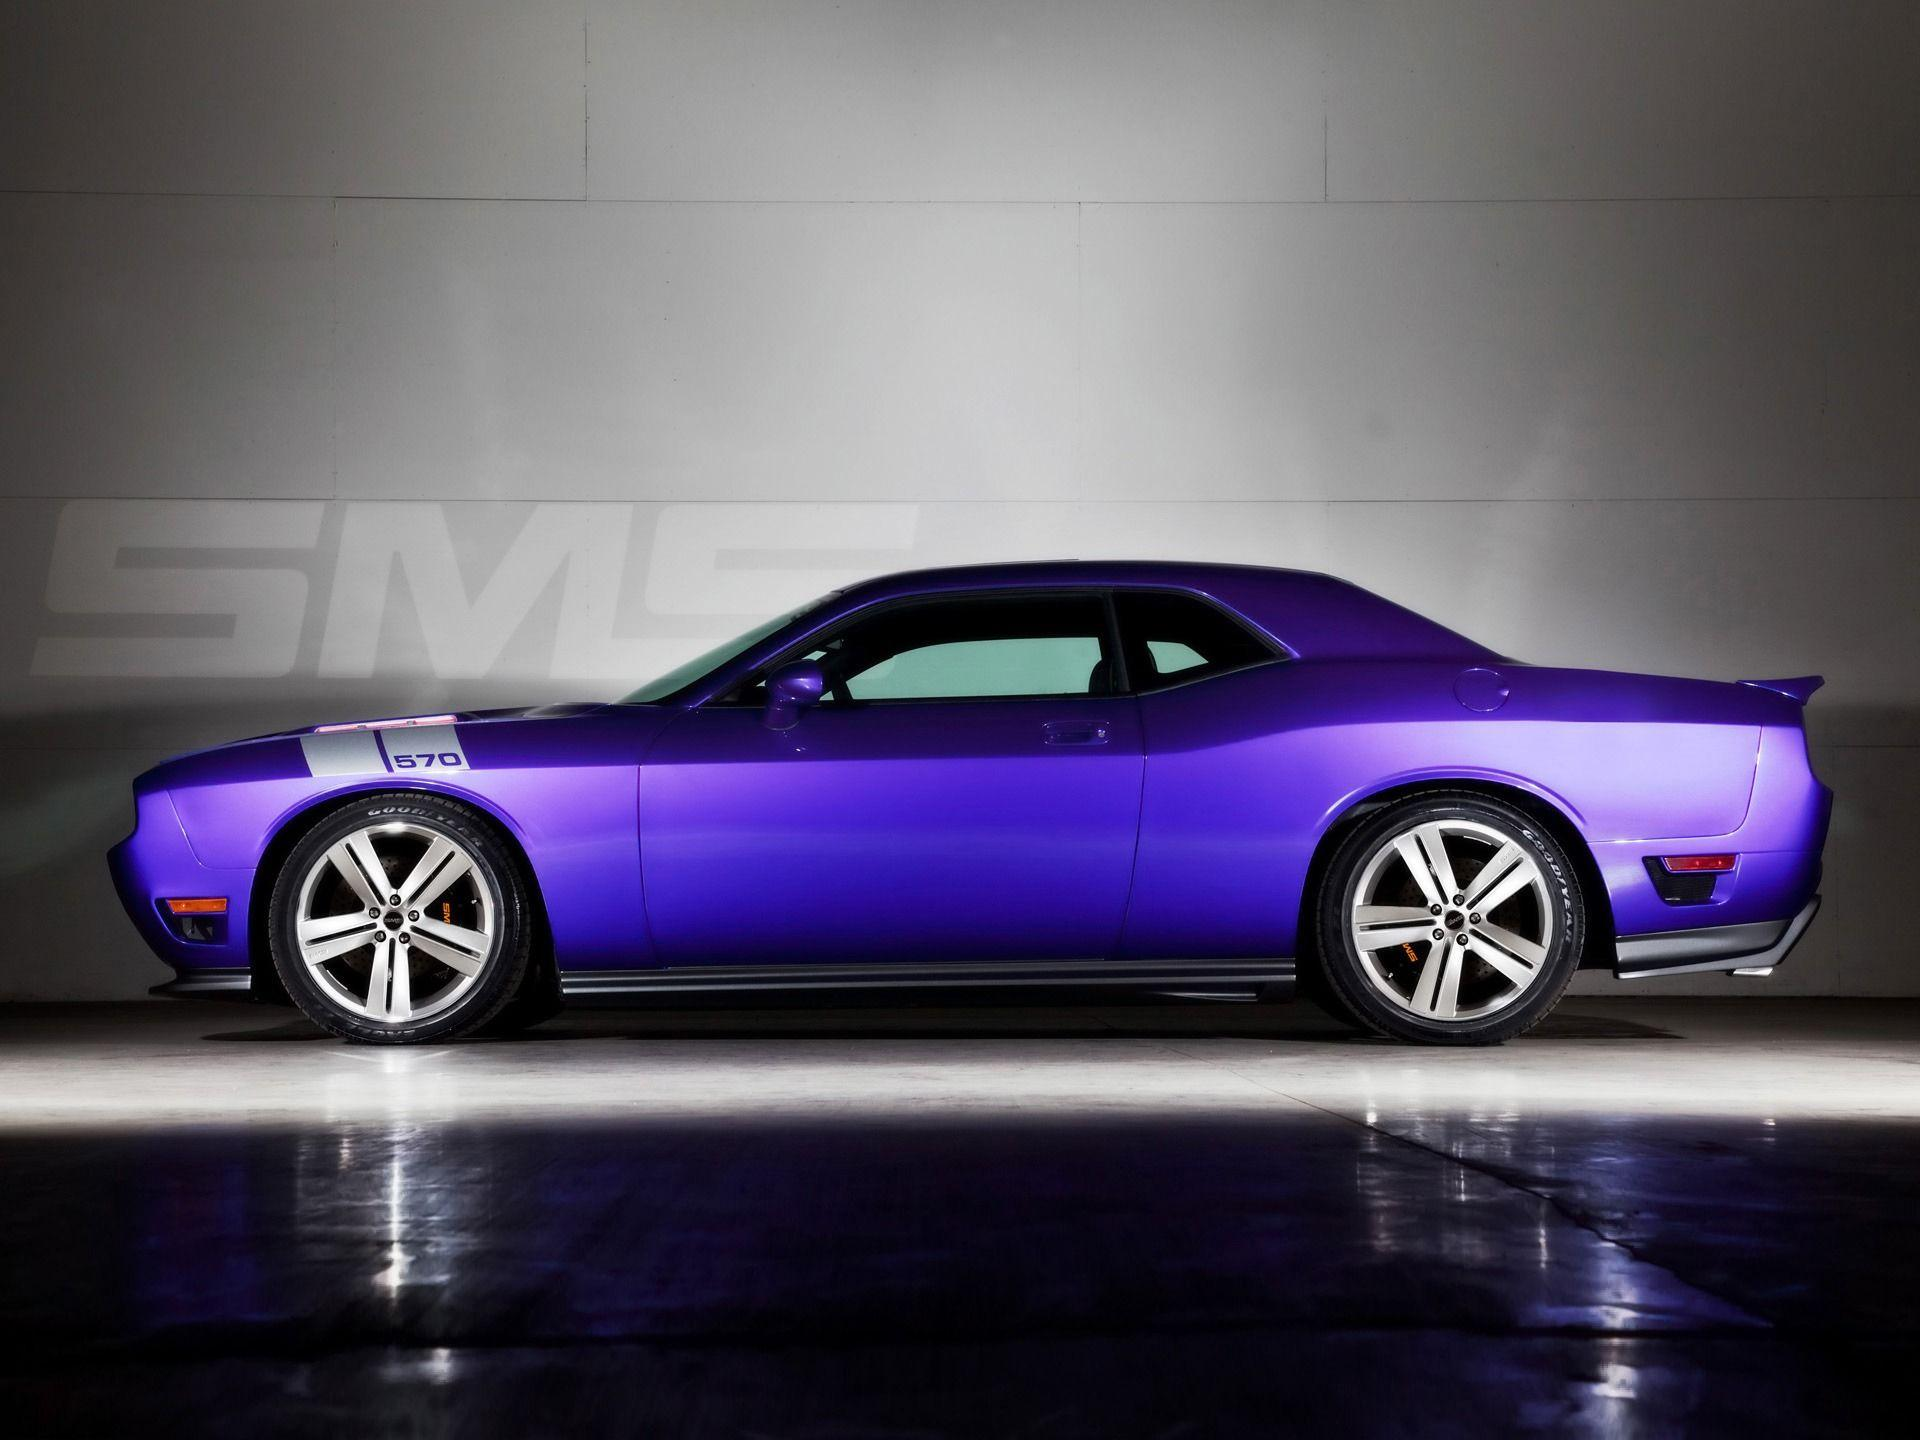 Dodge Challenger SMS 570 Wallpapers Dodge Cars Wallpapers in jpg